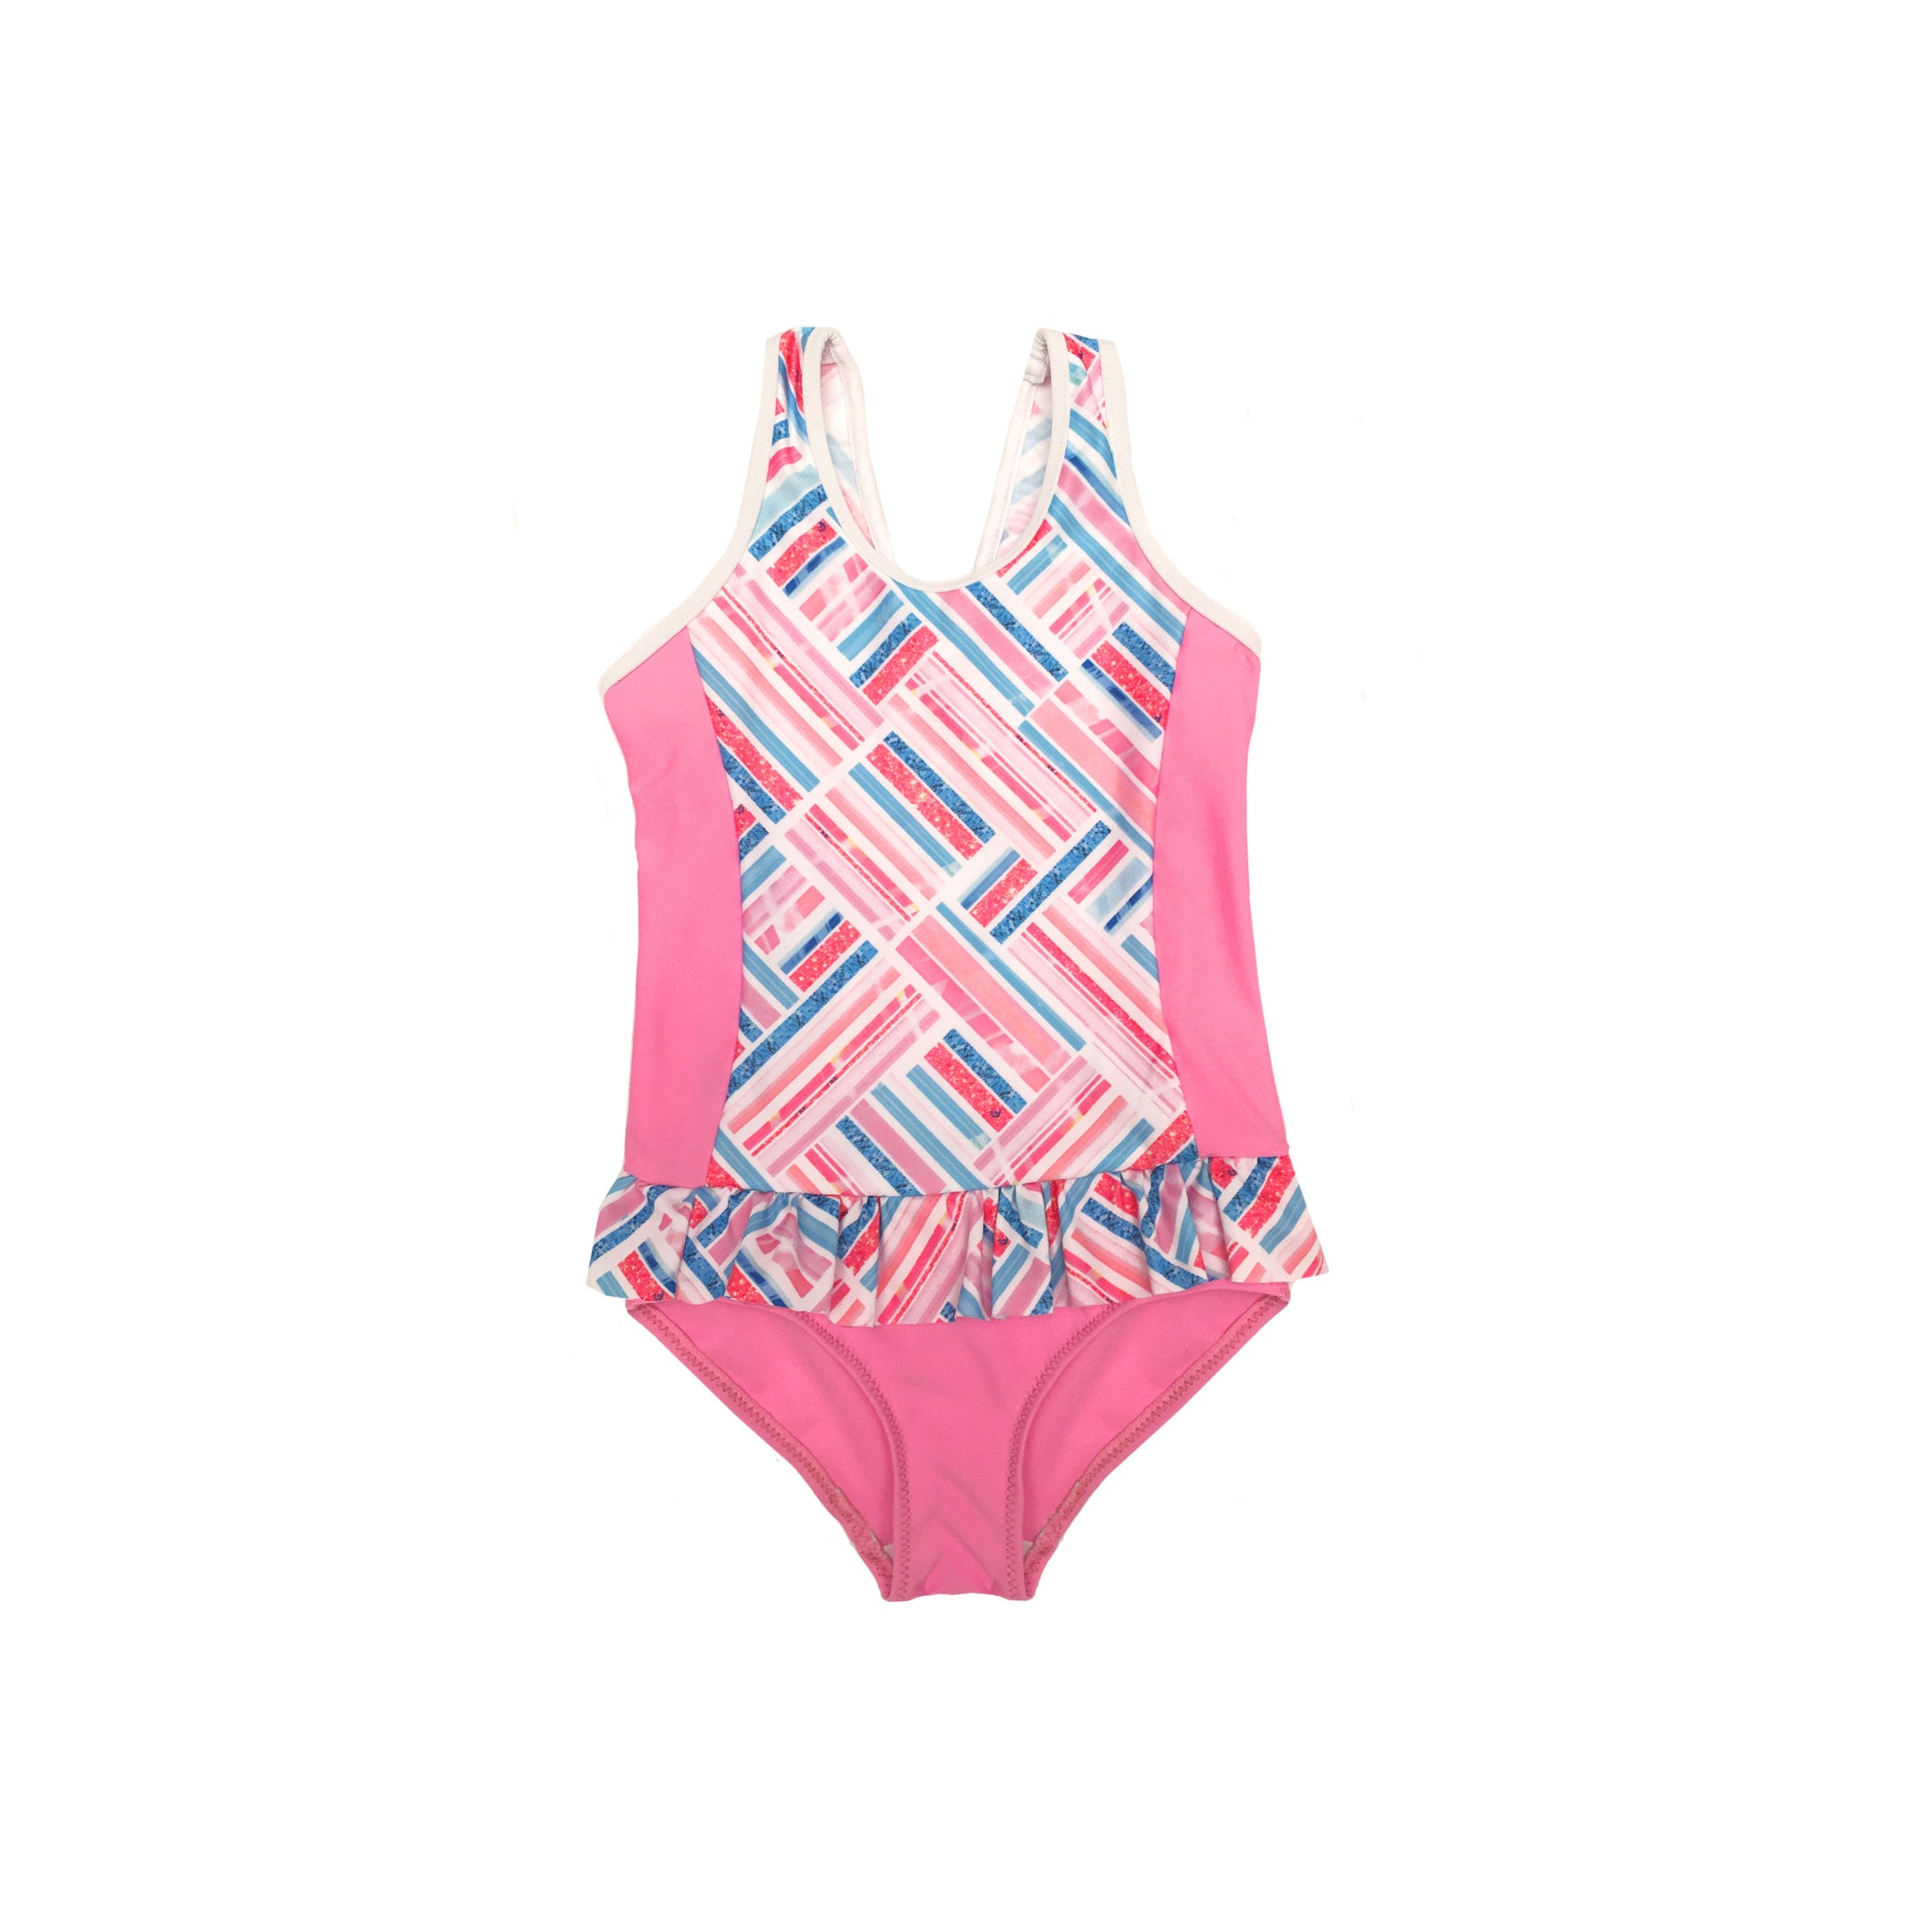 1004 Miss Sparkle Frill One Piece  - Chlorine resist - Salty Ink